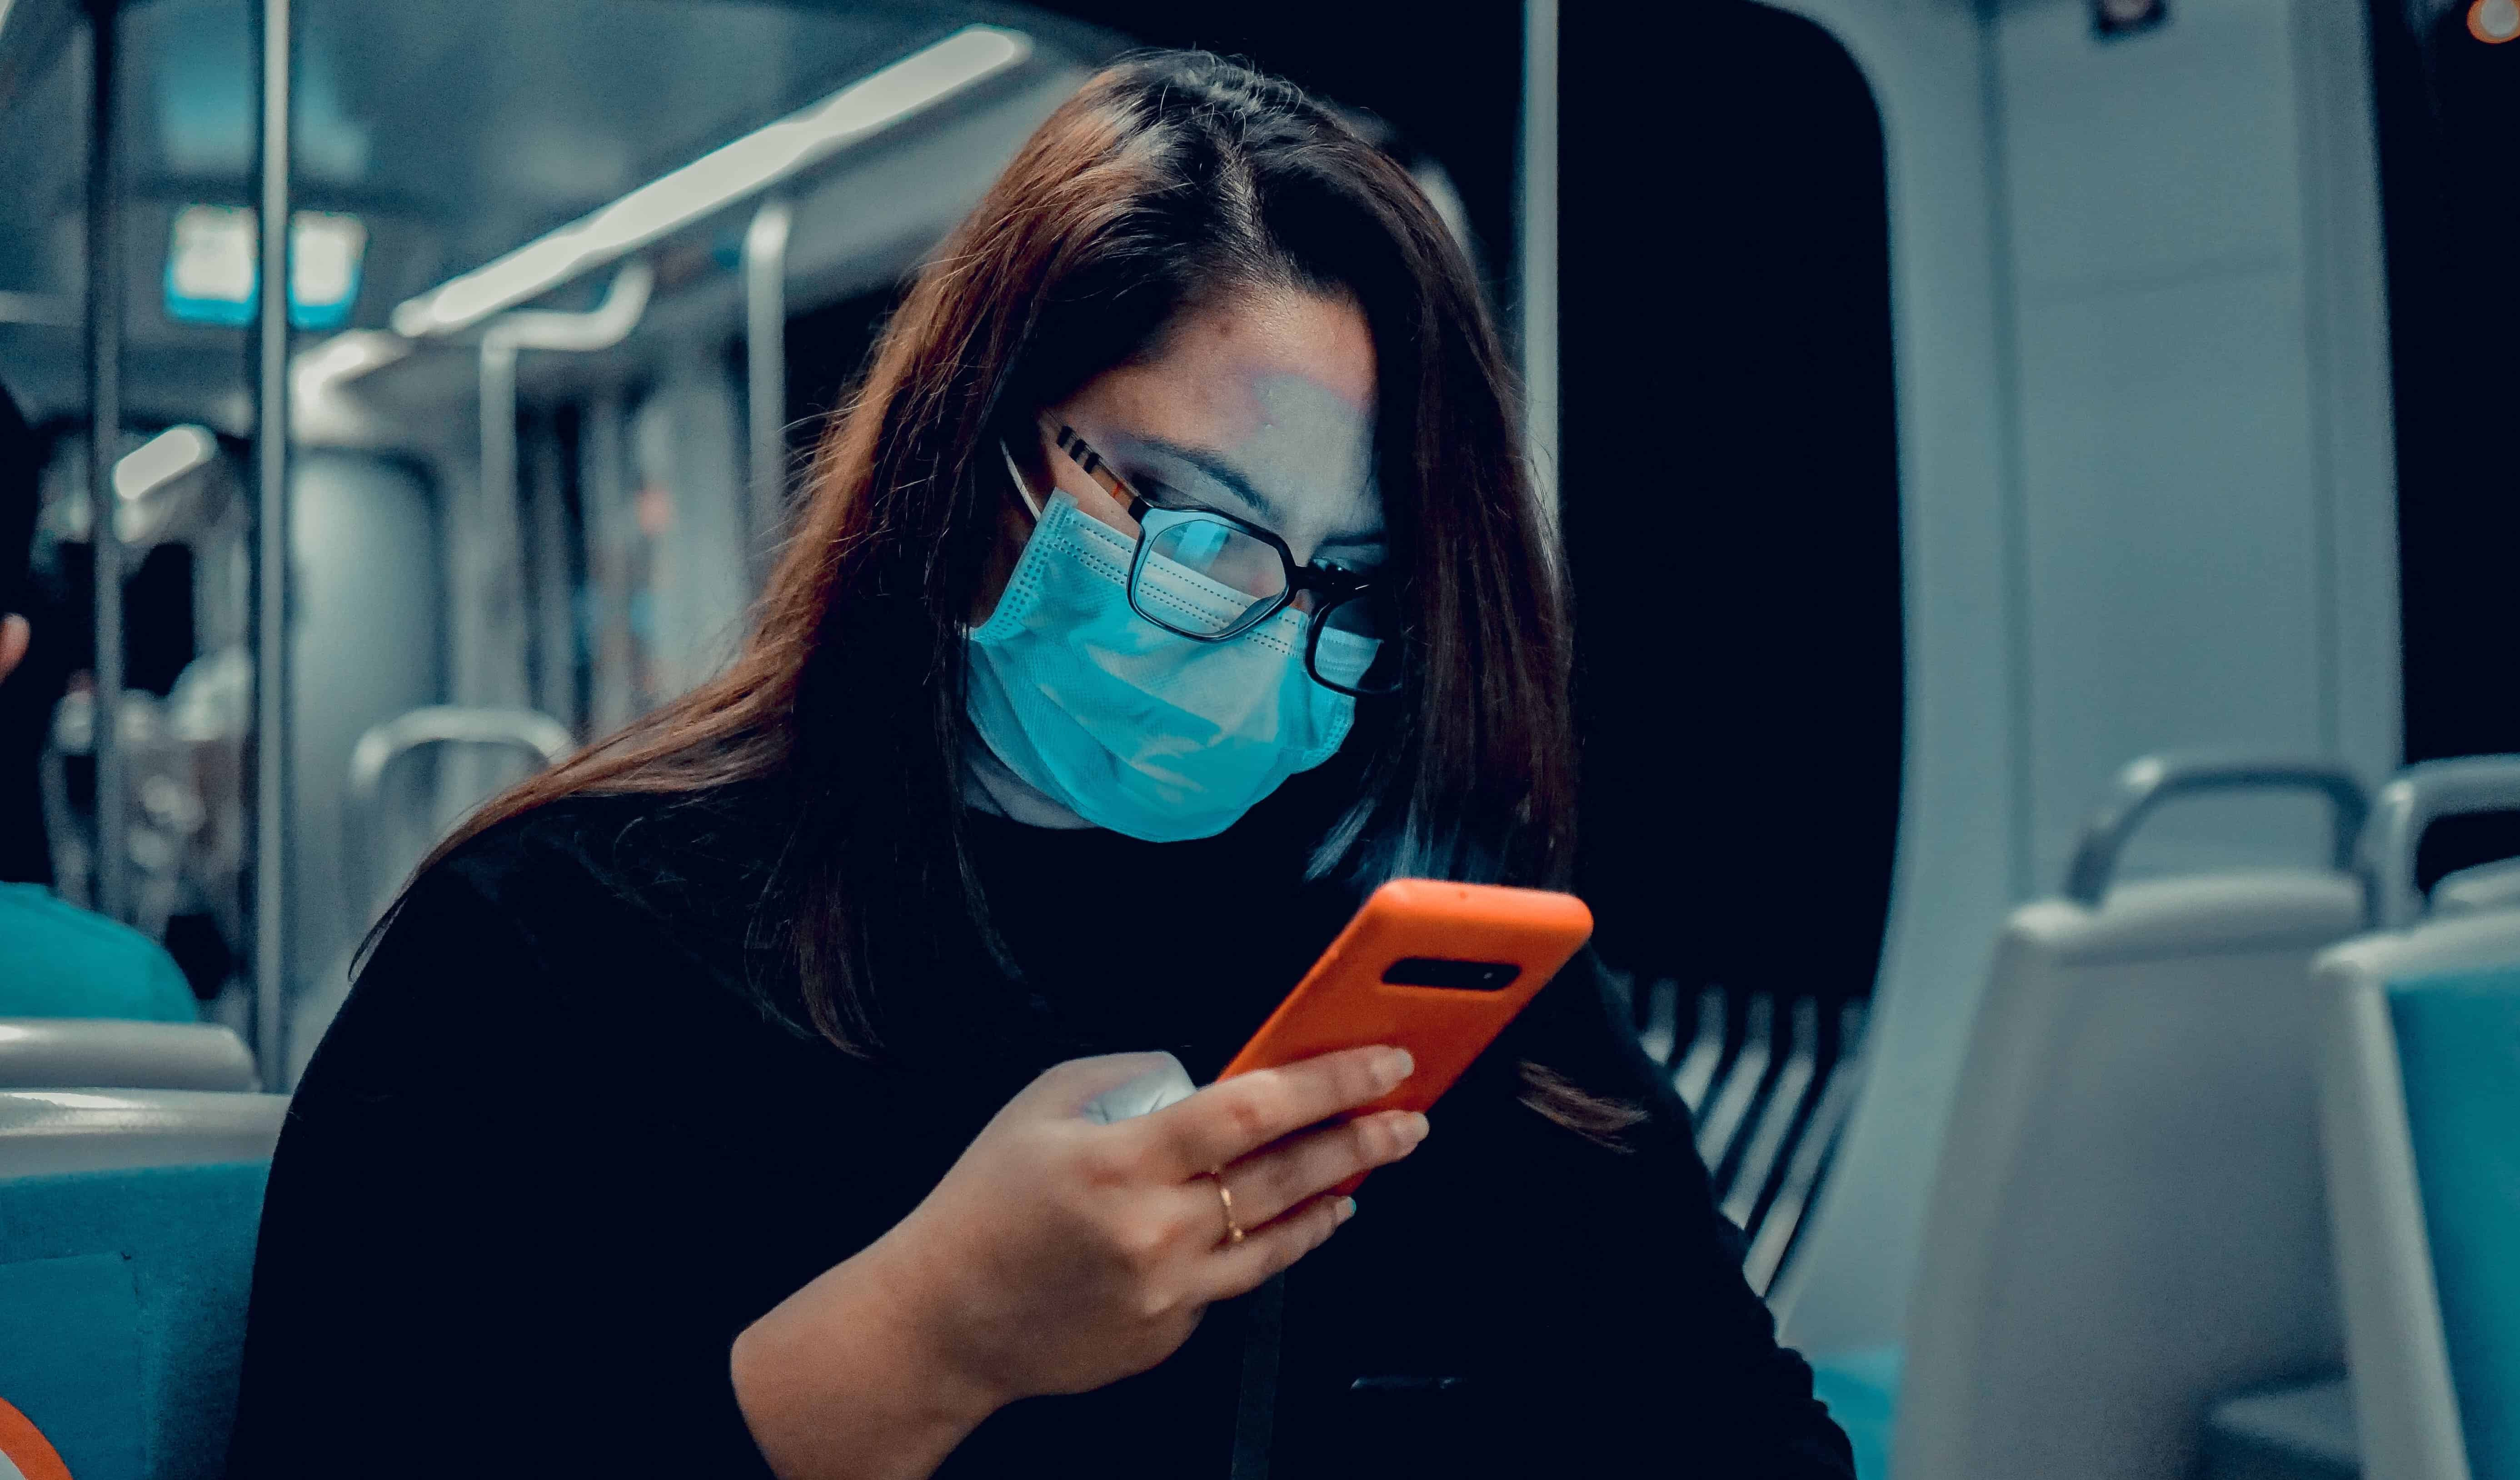 How to Use Face ID While Wearing a Mask